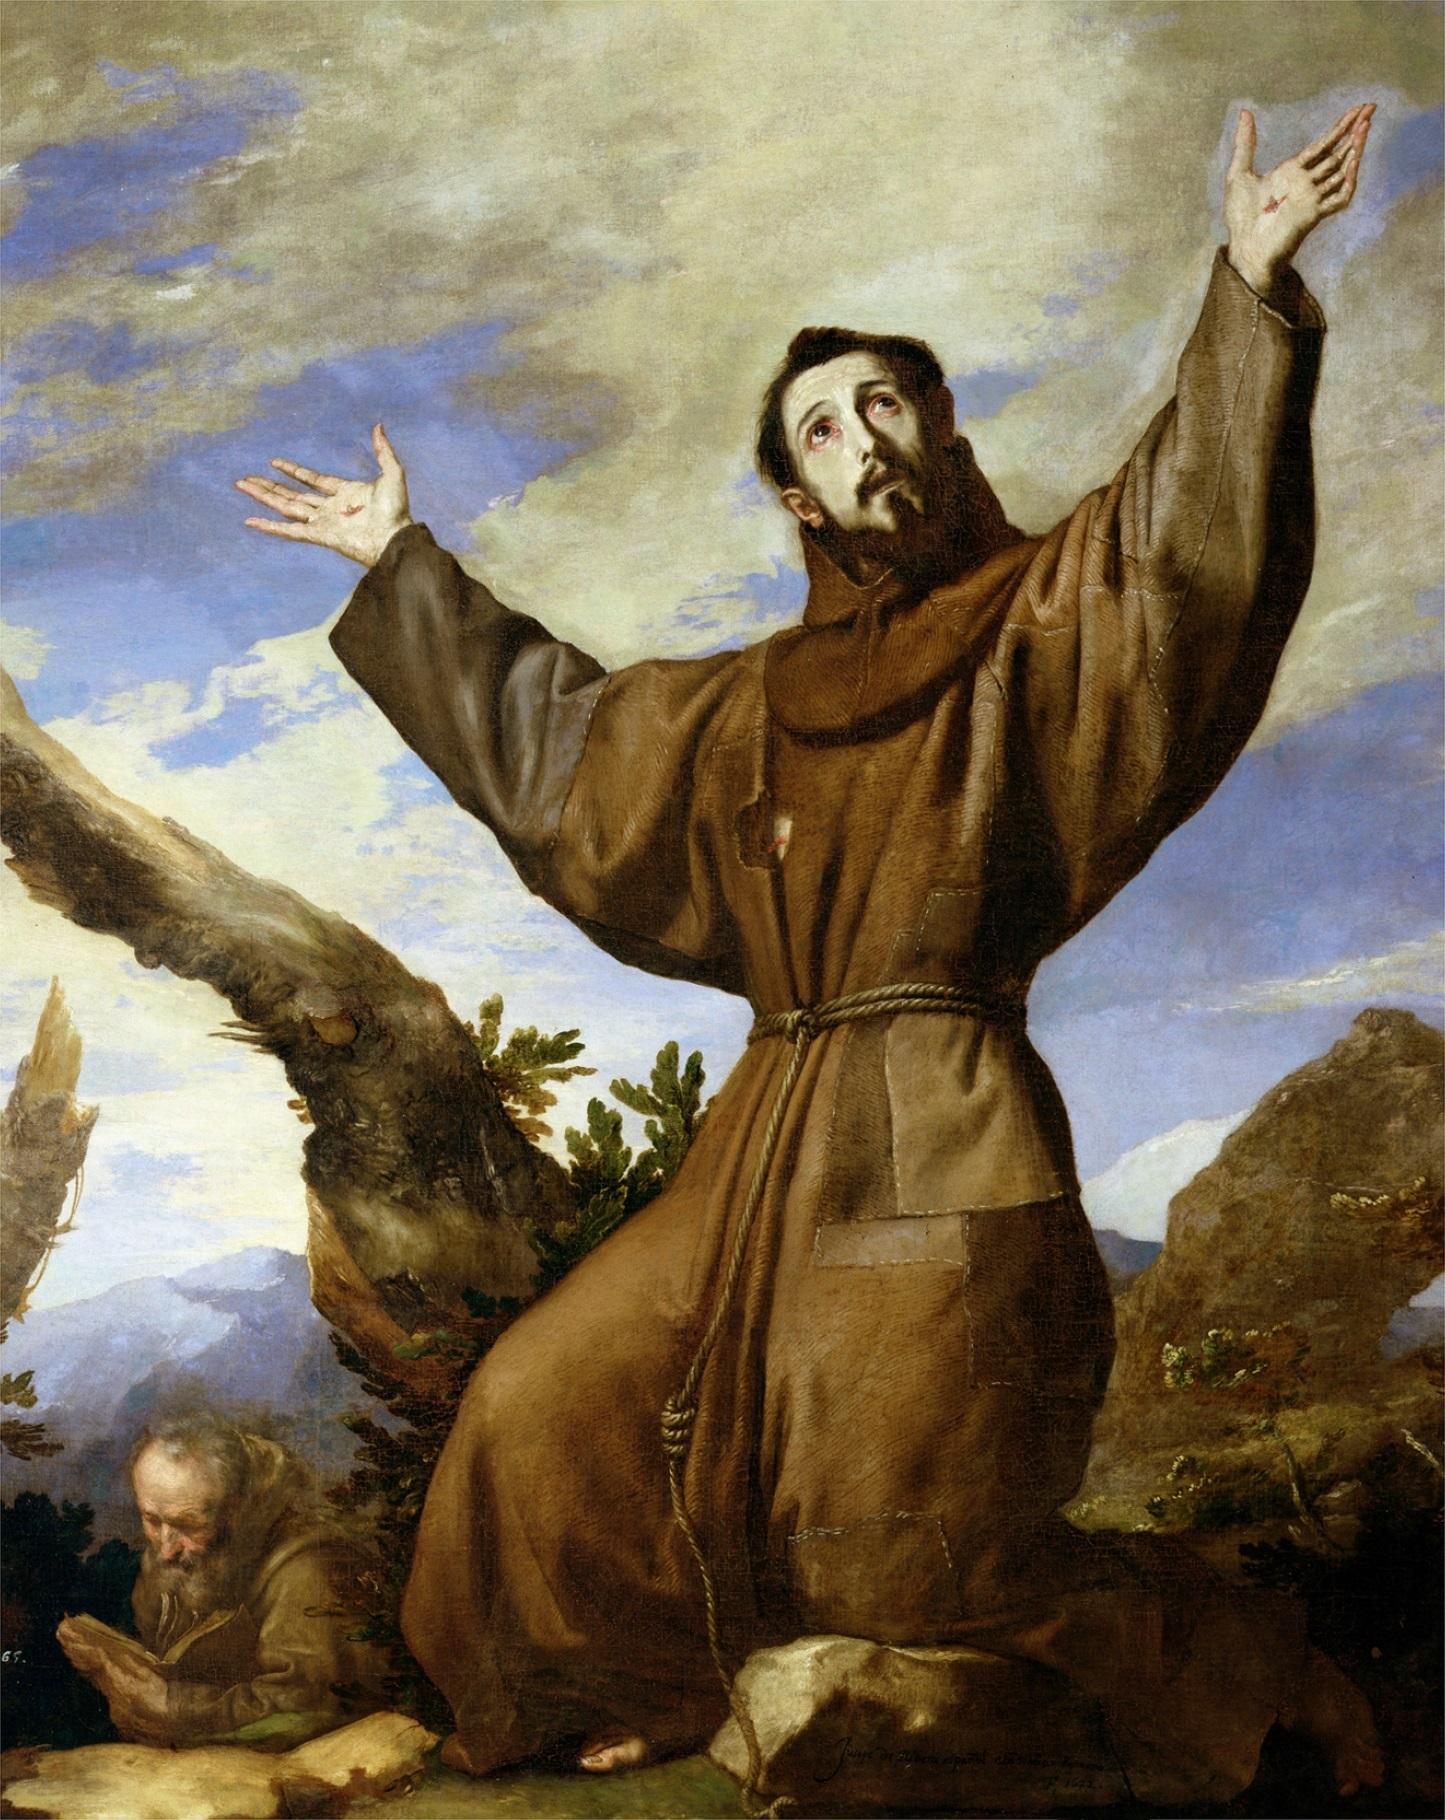 Was St Francis of Assisi a Buddha?